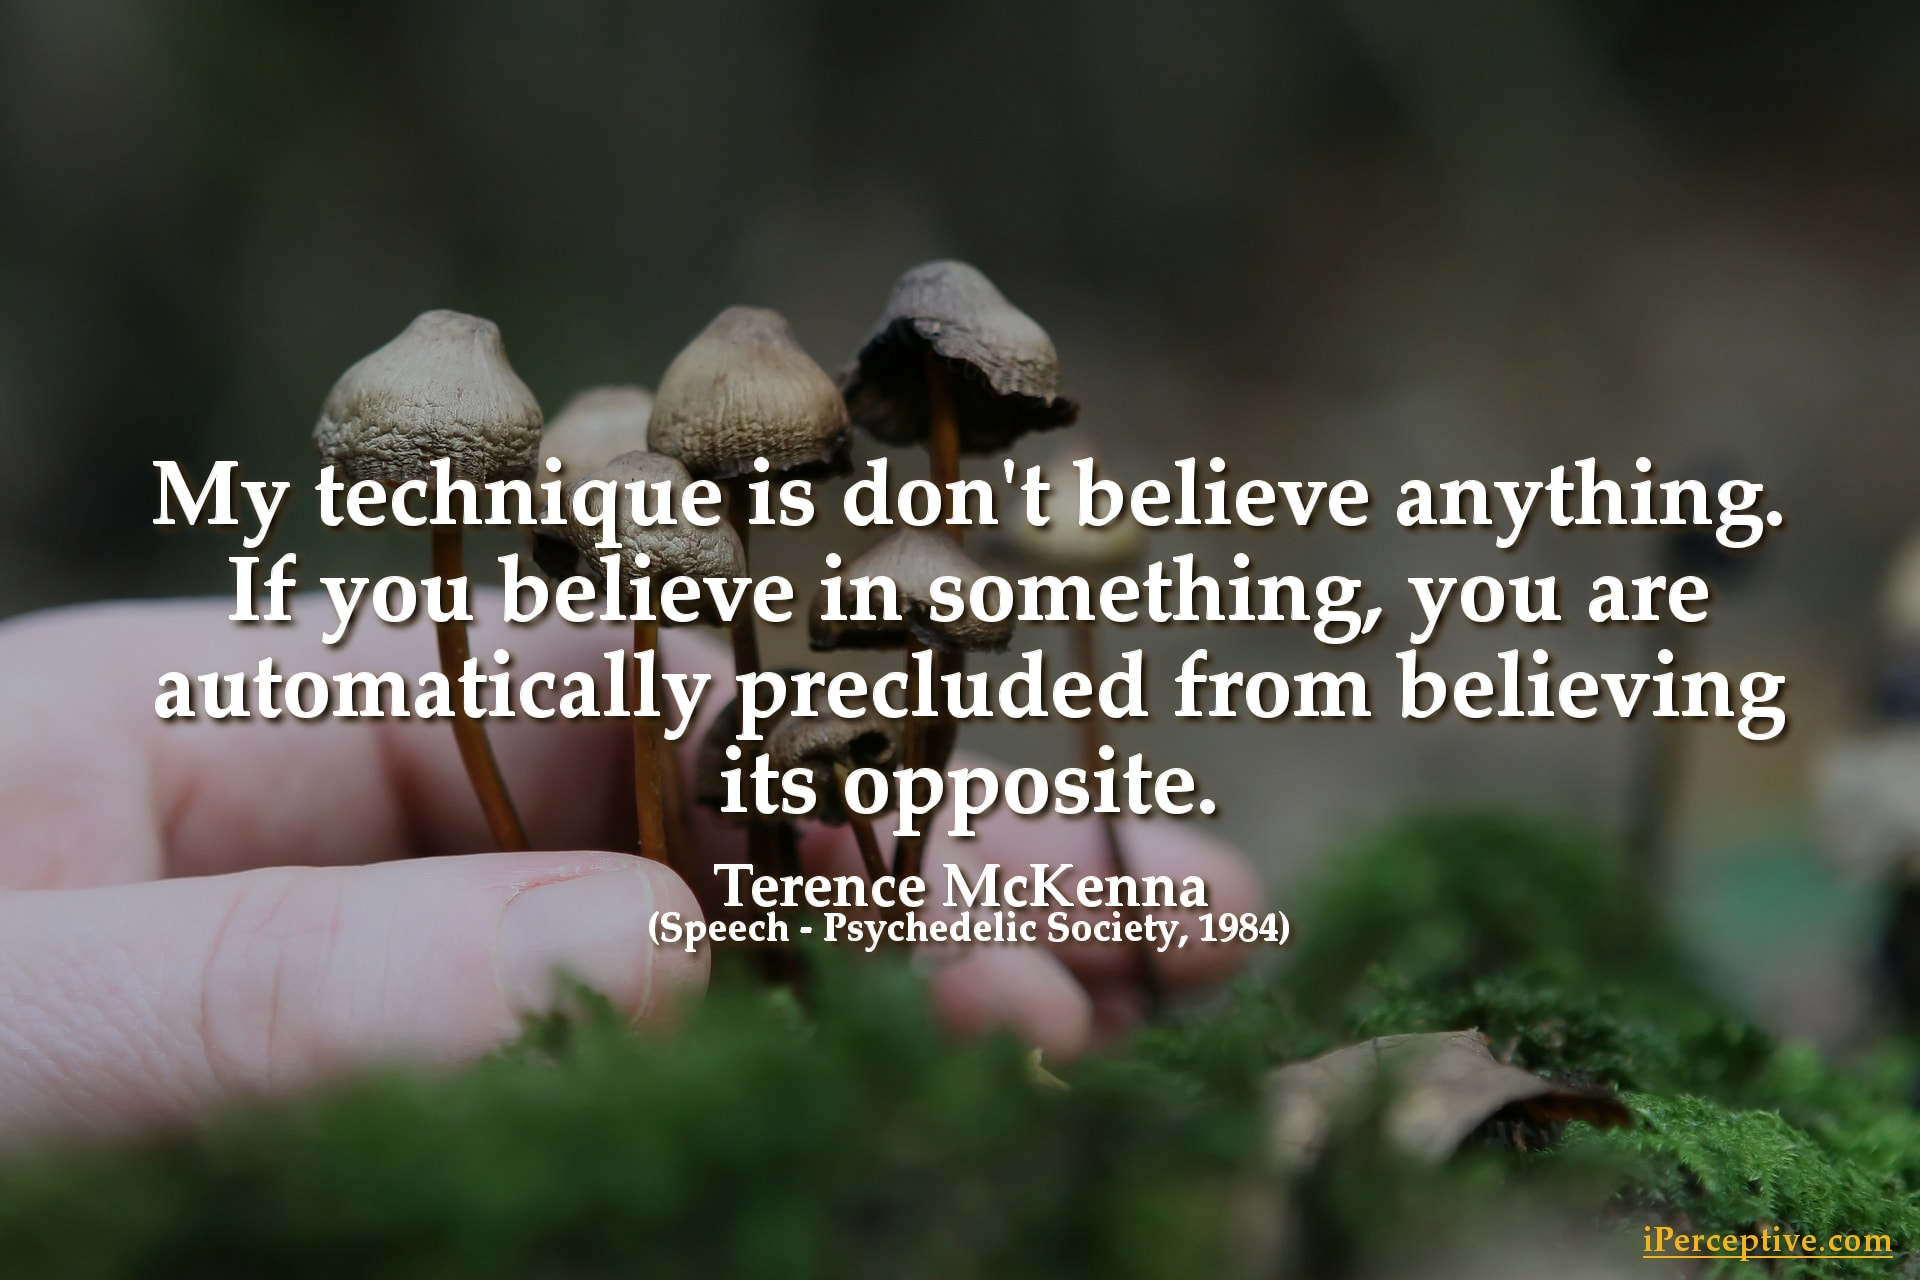 Terence McKenna Quote: My technique is don't believe anything...